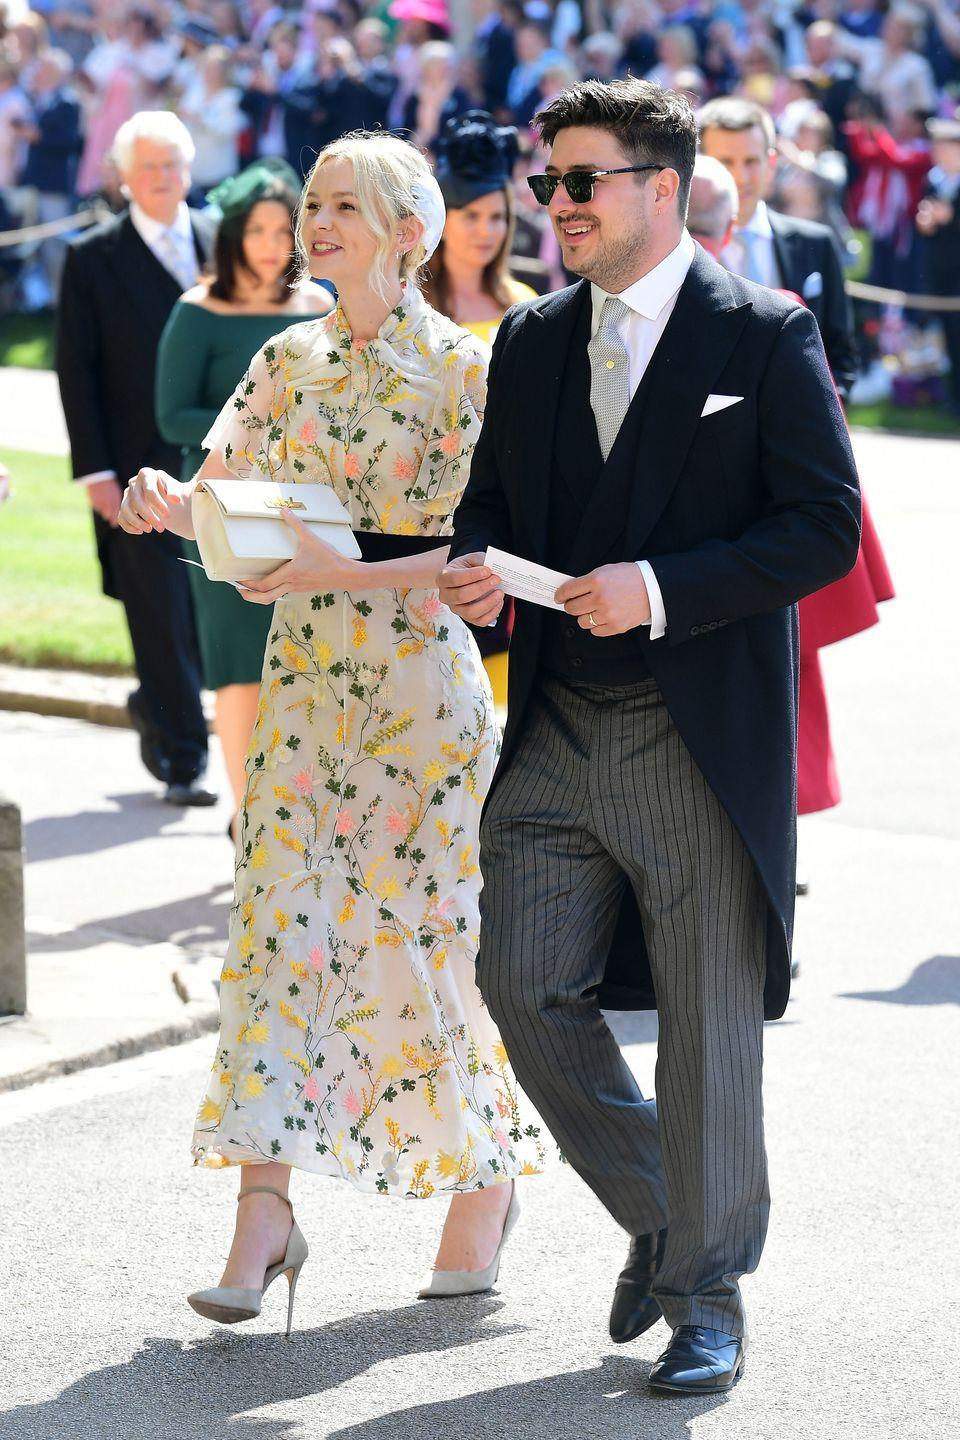 <p>While Carey and Mumford and Sons frontman Marcus are still married, they're a fiercely private couple, which explains why you might not know they're together. The couple wed in 2012 after less than a year of dating and now lives in England with their two children.</p>